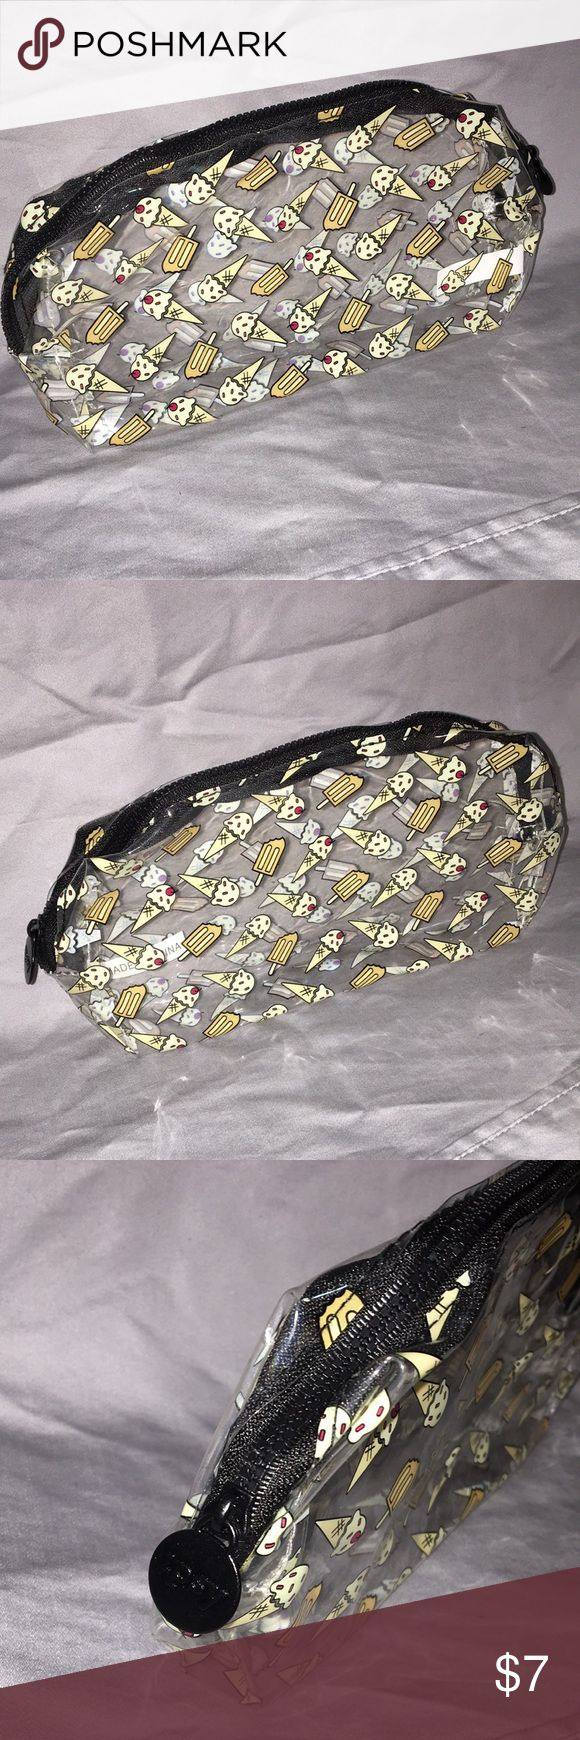 Ipsy Makeup Bag Clear ice cream patterned makeup bag. Plastic material. Easy to clean. See through. Bags Cosmetic Bags & Cases